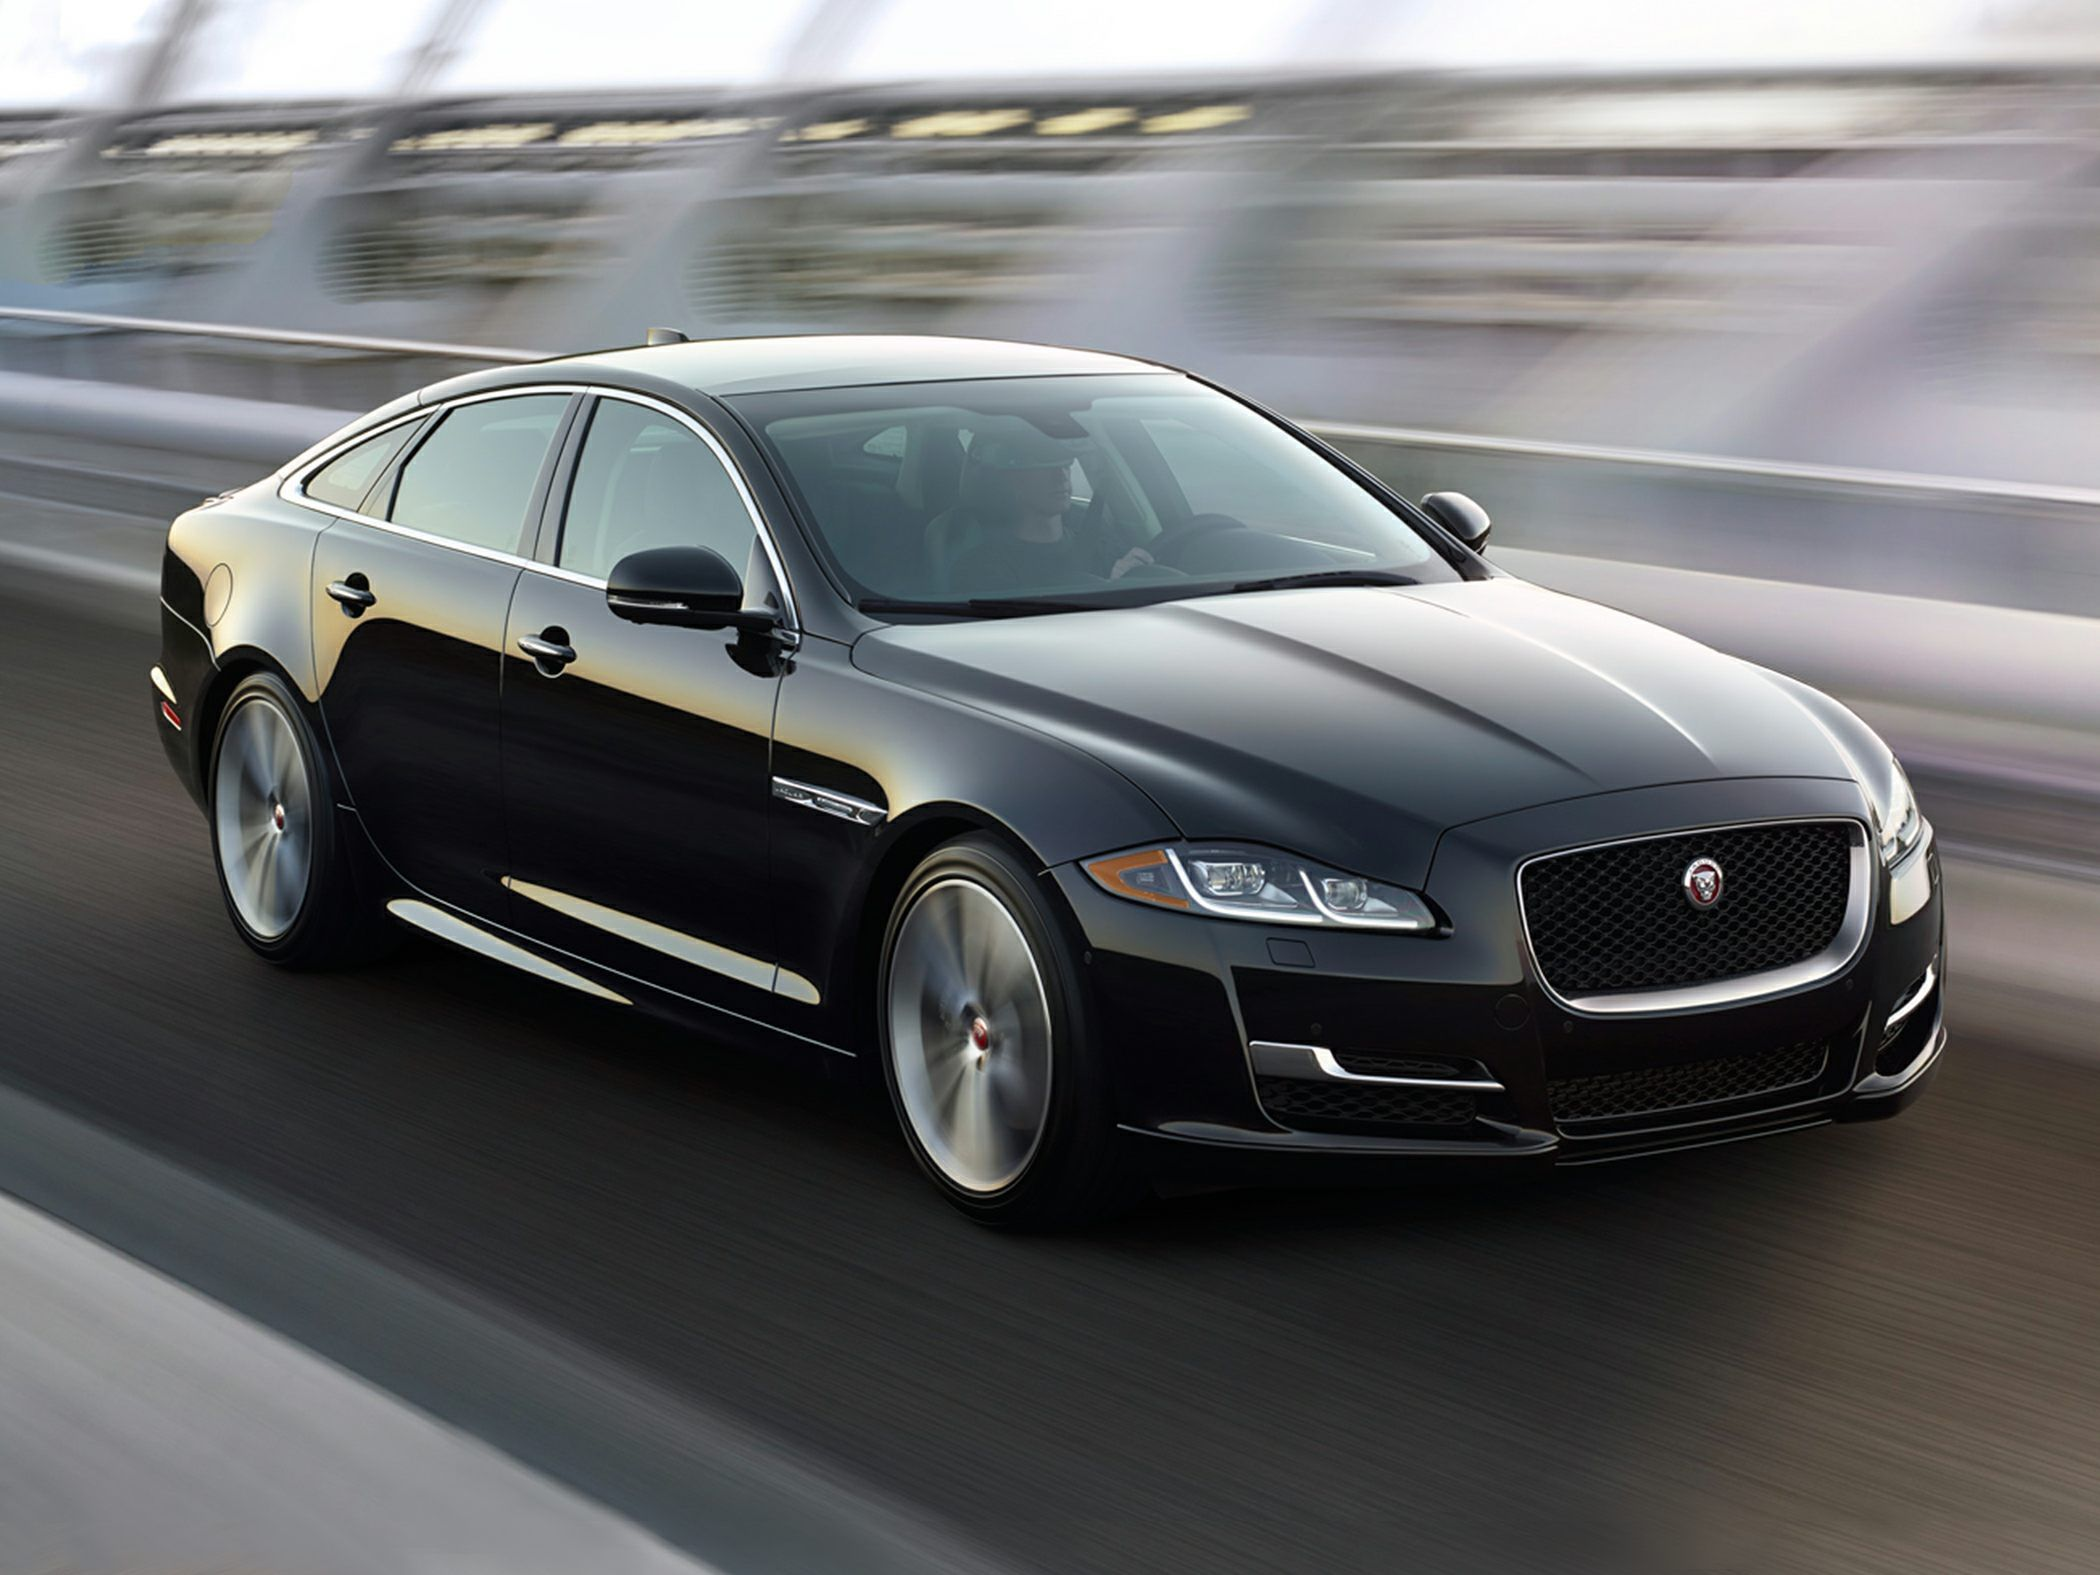 interior in specs all image reviews show variant xj price of malaysia jaguar